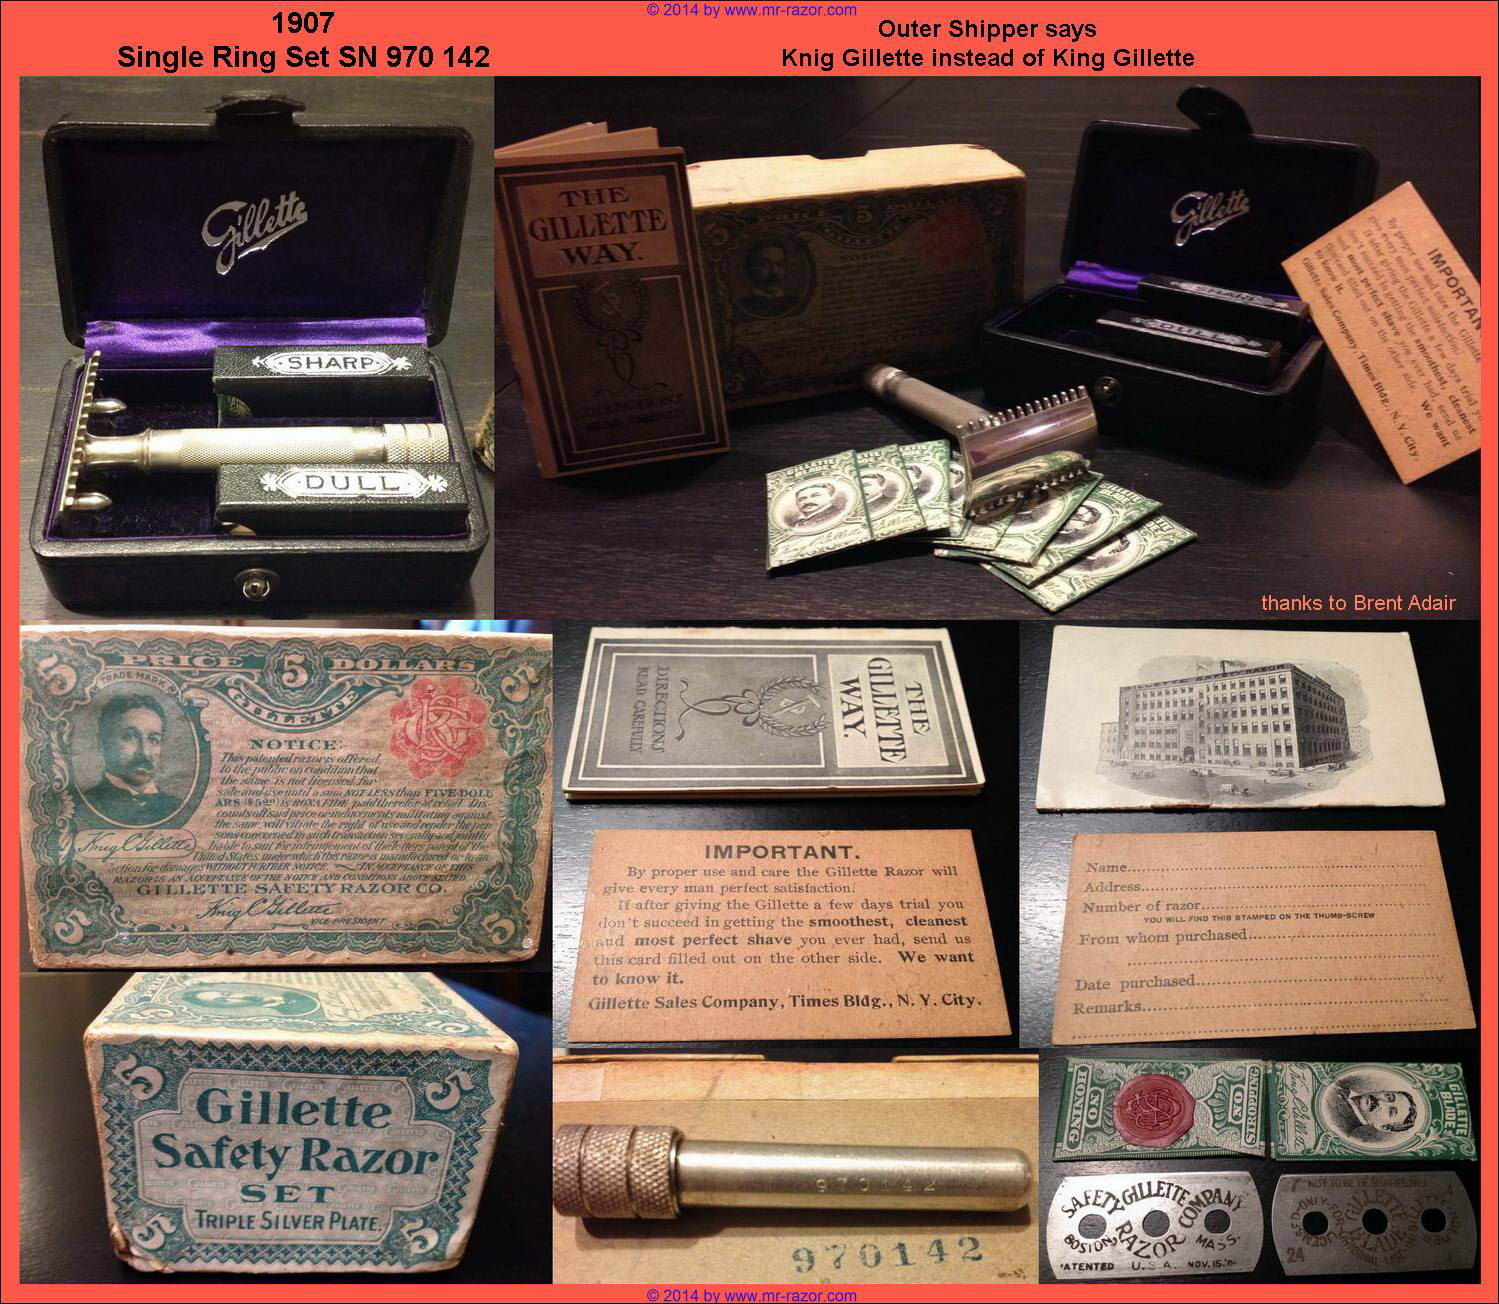 gillette singles Date and feature guide for gillette razors and blades: dating gillette razors and blades:  single ring handle introduced: king gillette's picture on blade wrappers.